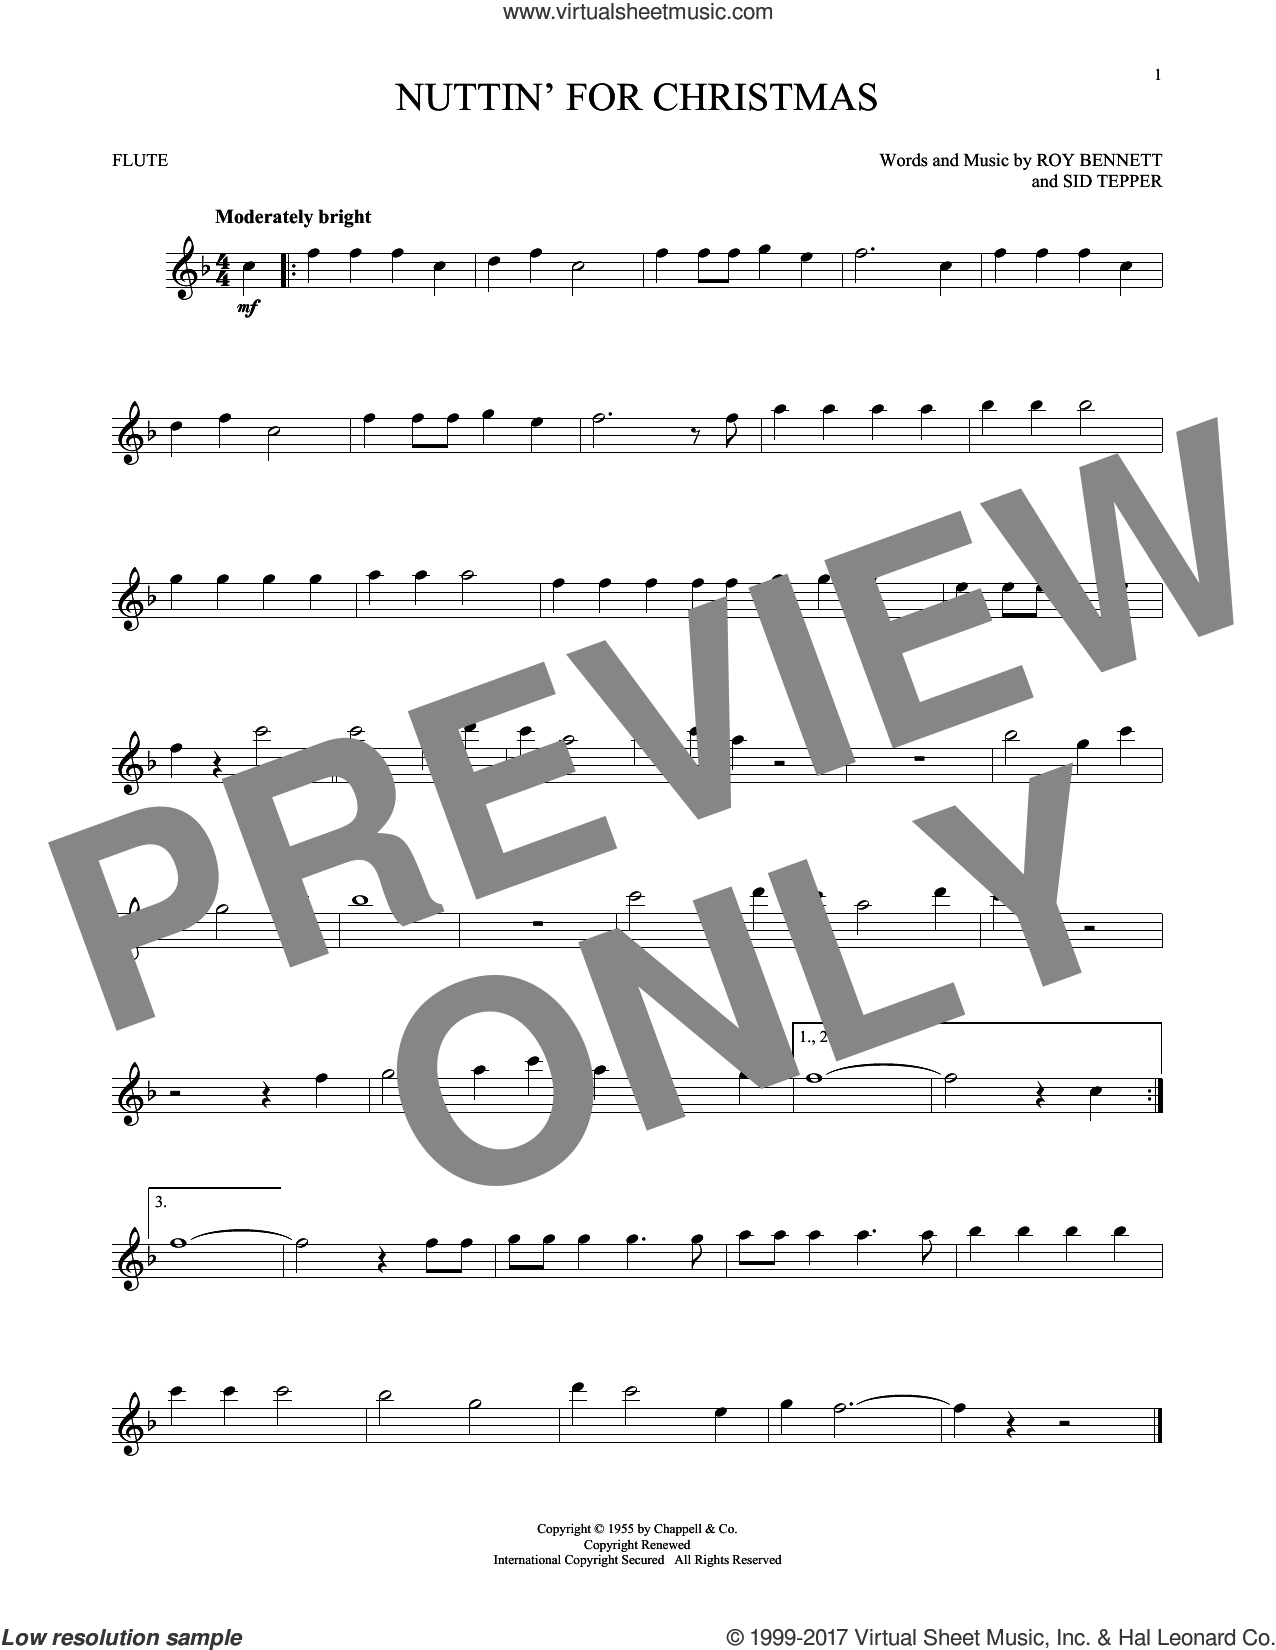 Nuttin' For Christmas sheet music for flute solo by Sid Tepper and Roy Bennett, intermediate skill level